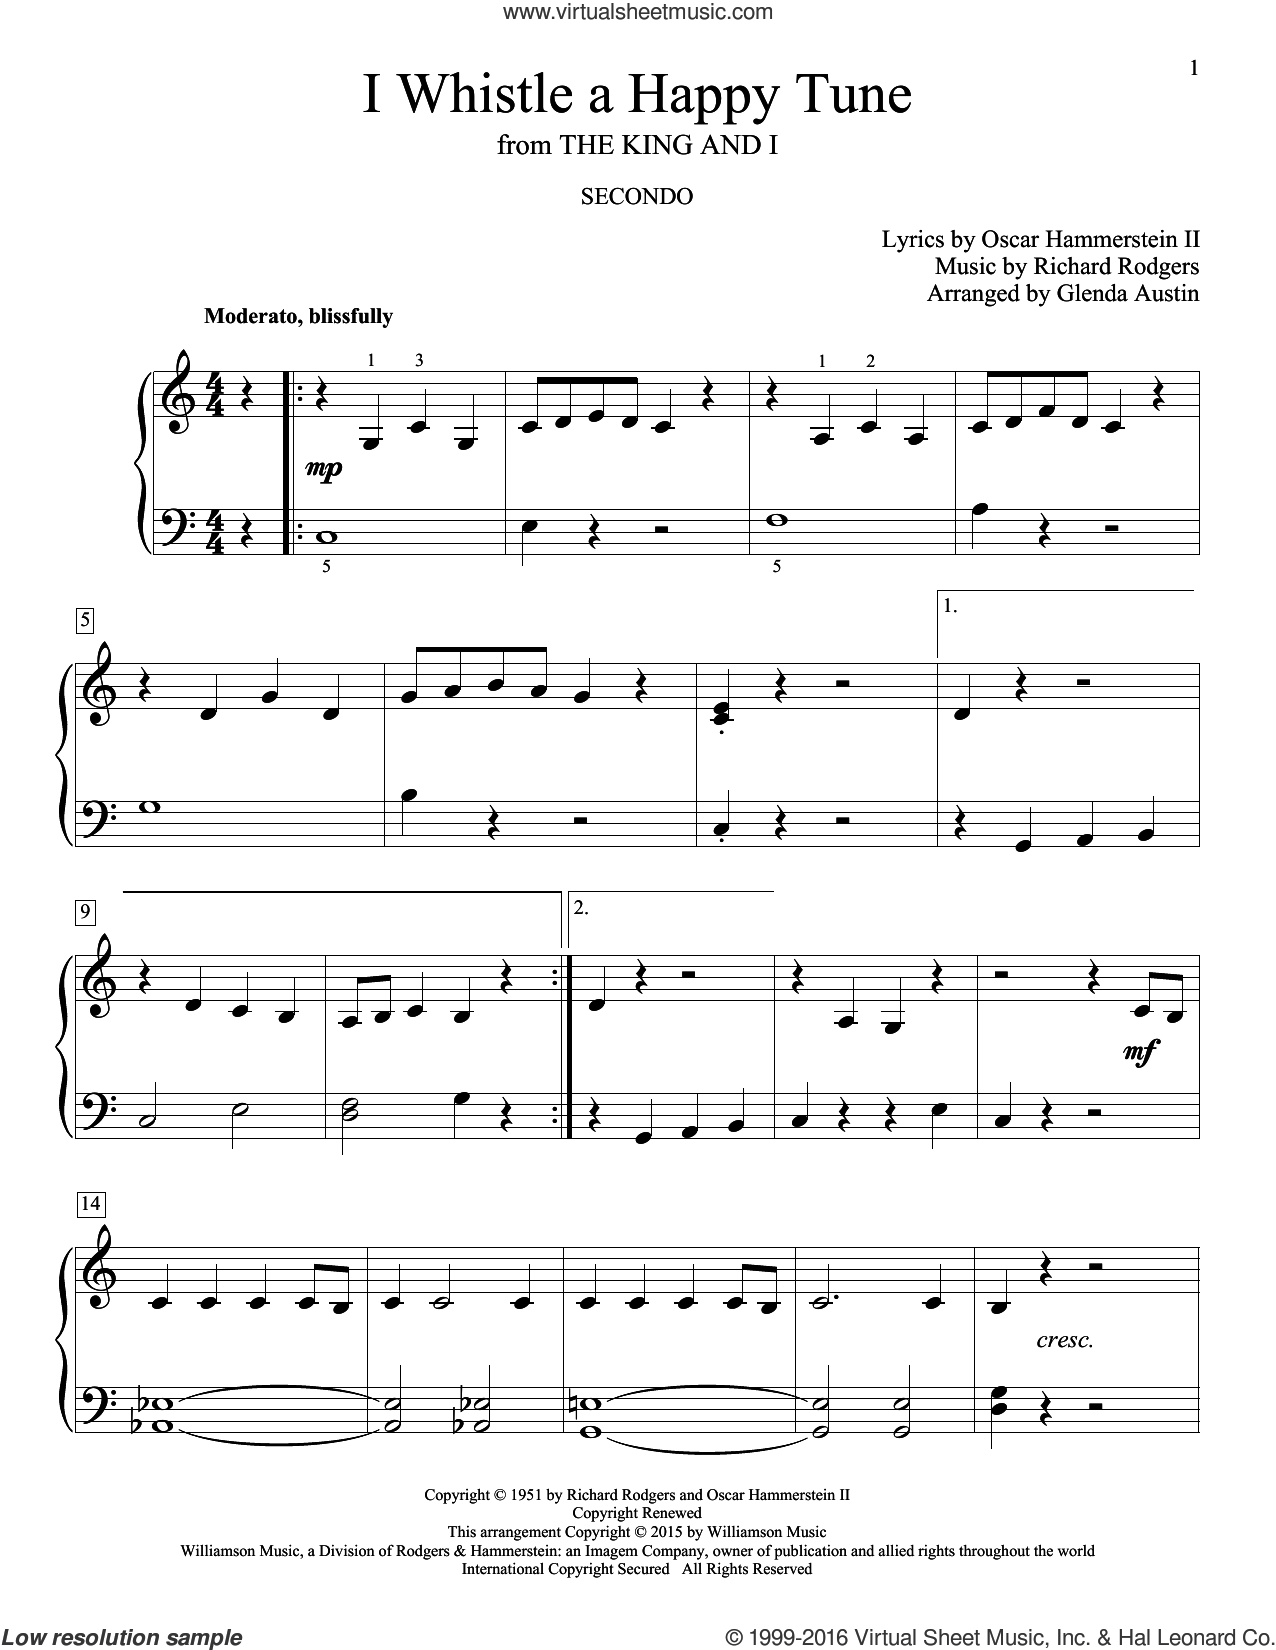 I Whistle A Happy Tune sheet music for piano four hands (duets) by Richard Rodgers, Glenda Austin and Oscar II Hammerstein. Score Image Preview.